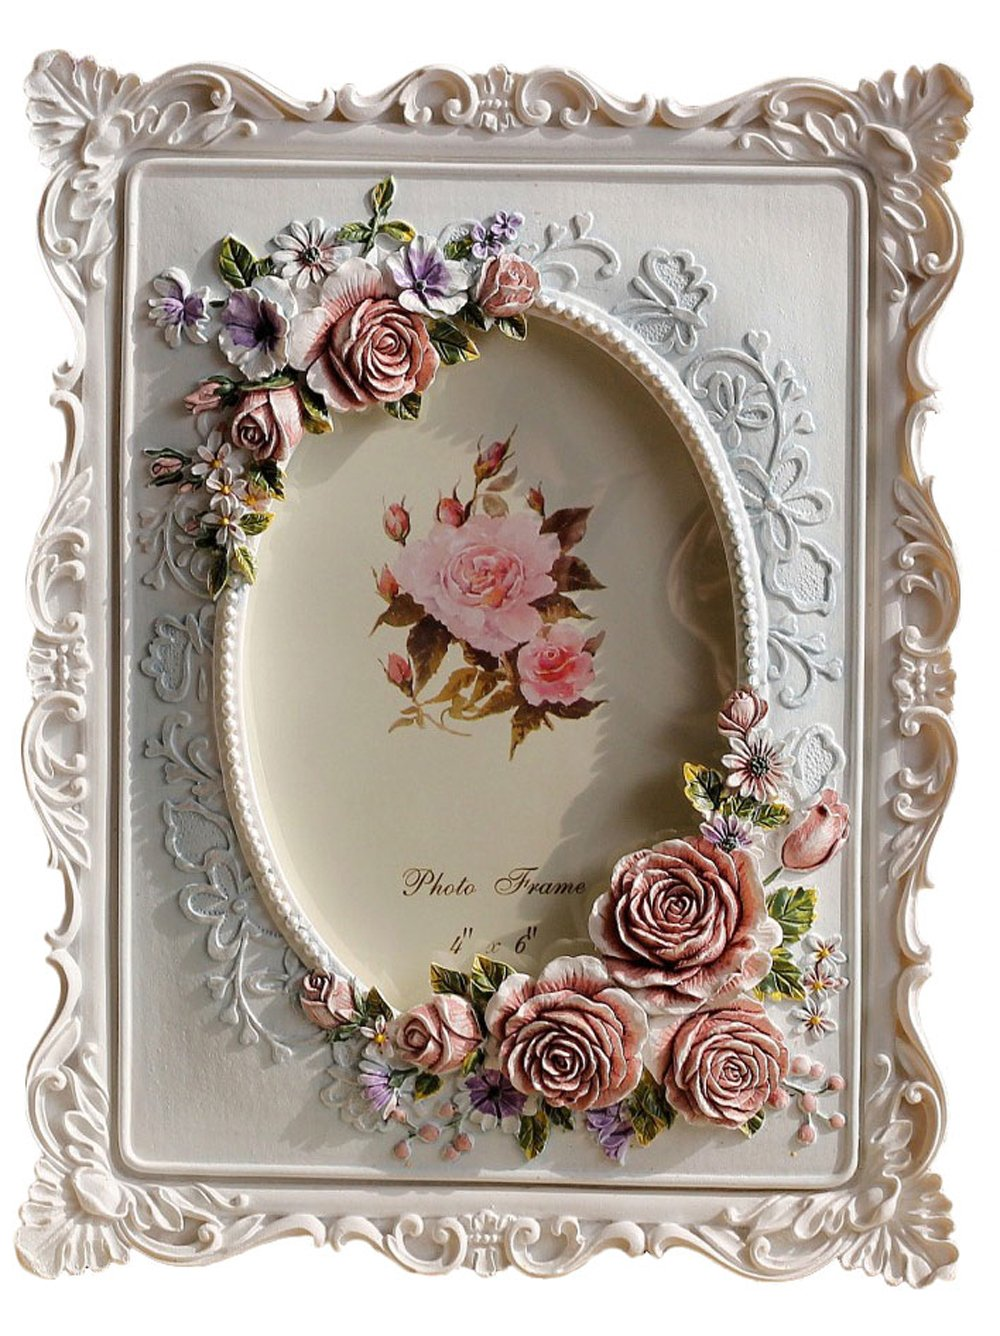 Giftgarden 4x6 Rustic Picture Frame Rose Decor White Frames 4 6 inch Photo Mother Gift, Wedding Gift, Birthday Gift